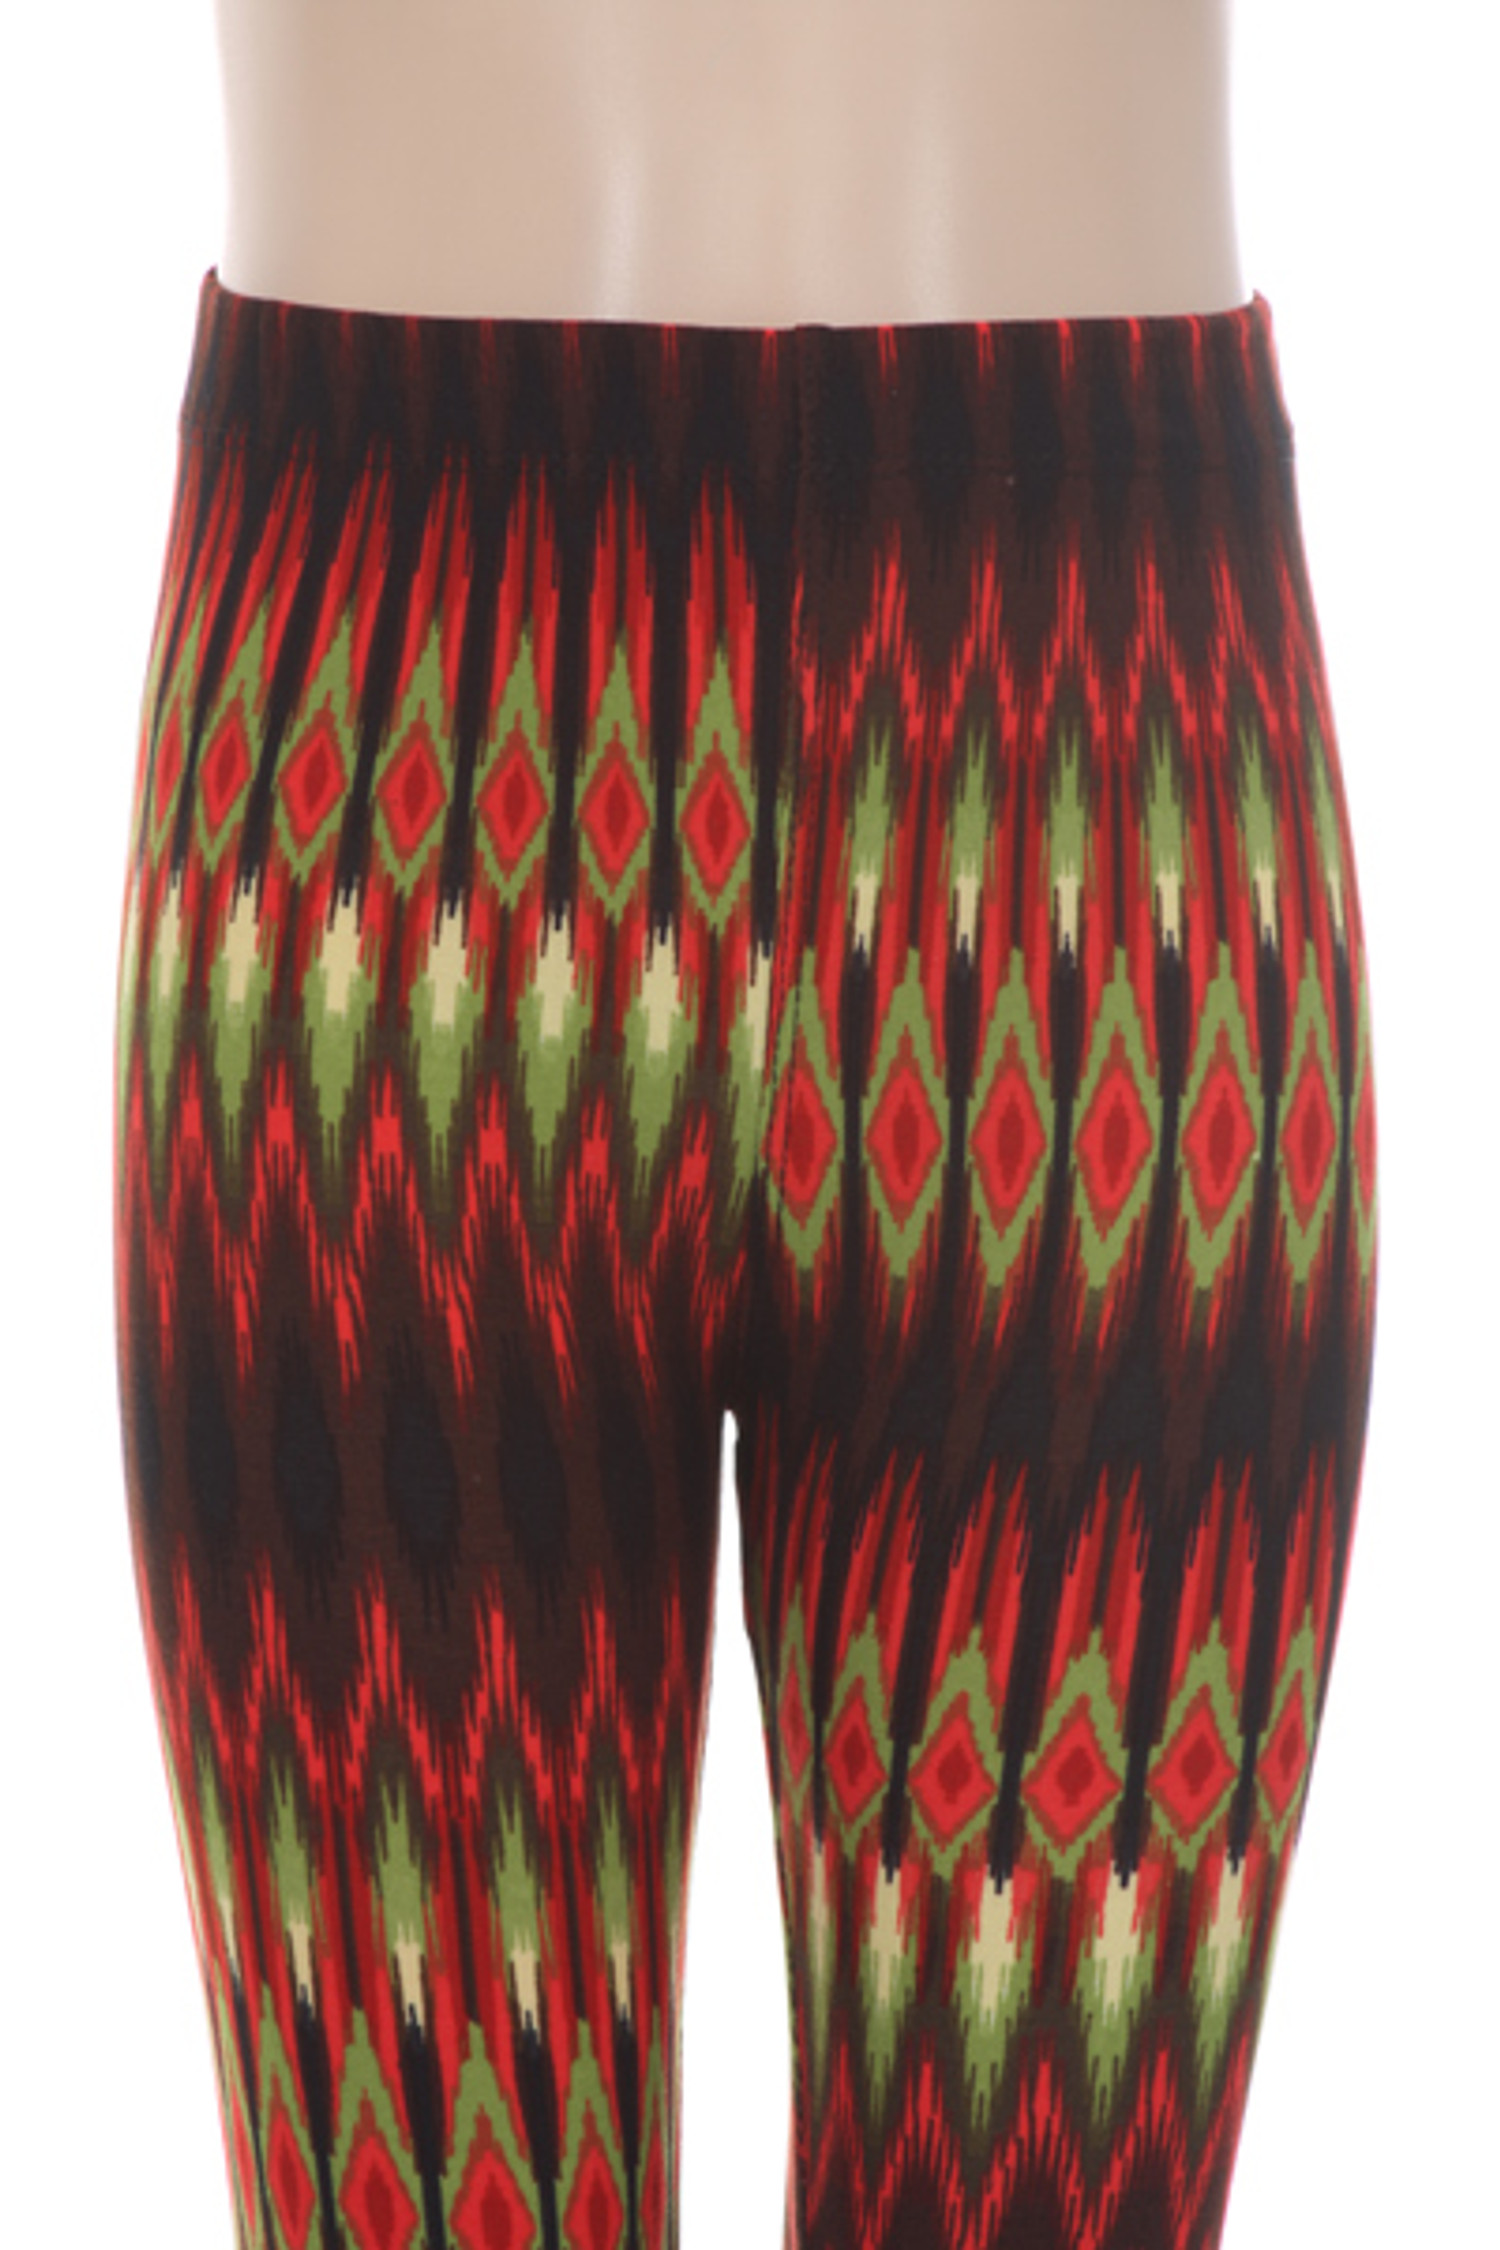 Teardrop Tribal Kids Leggings